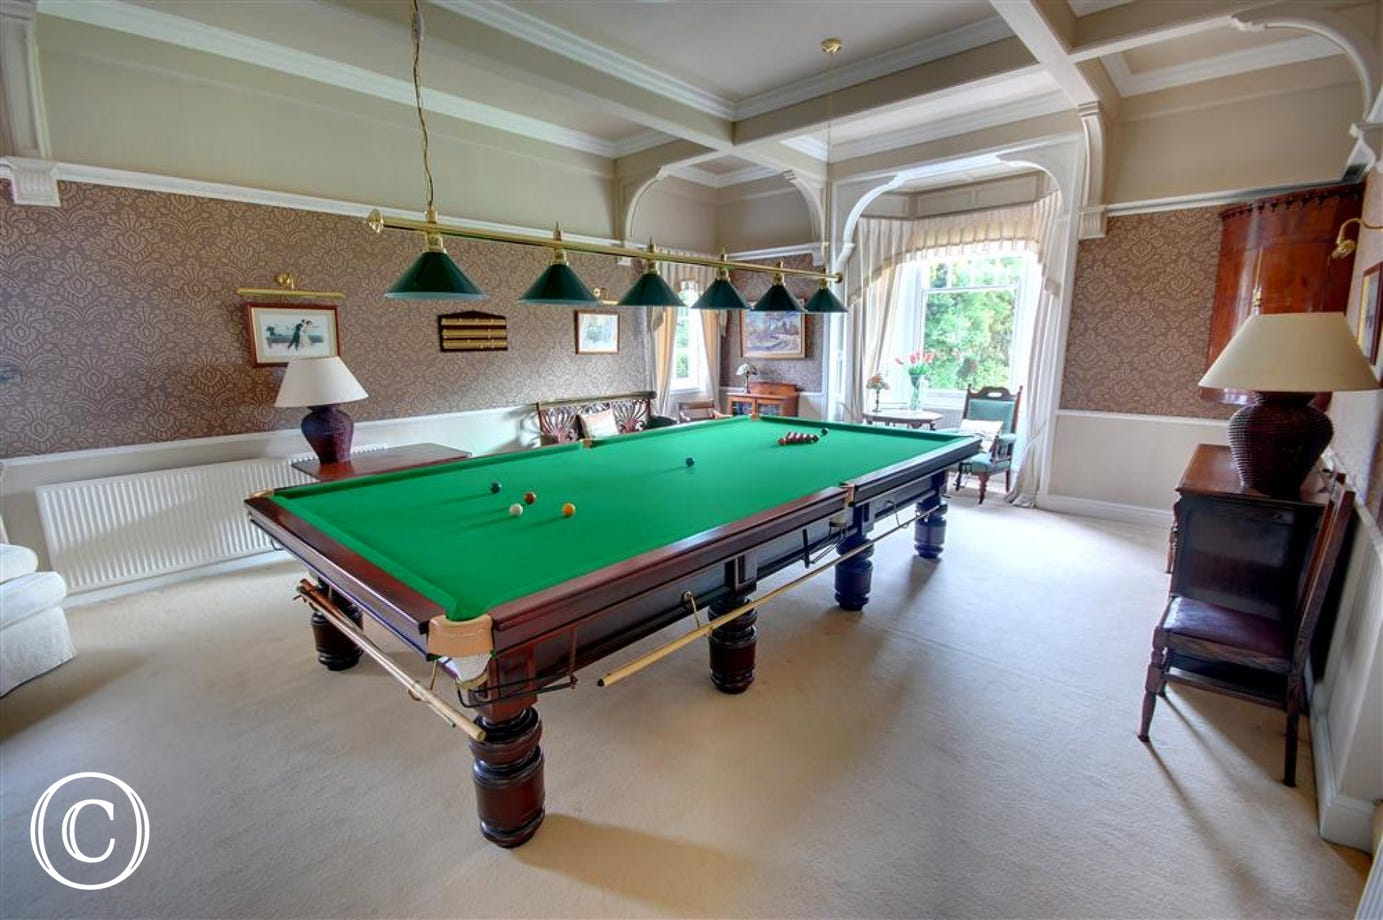 The spacious Games Room adjoins the Lounge and Dining Room.